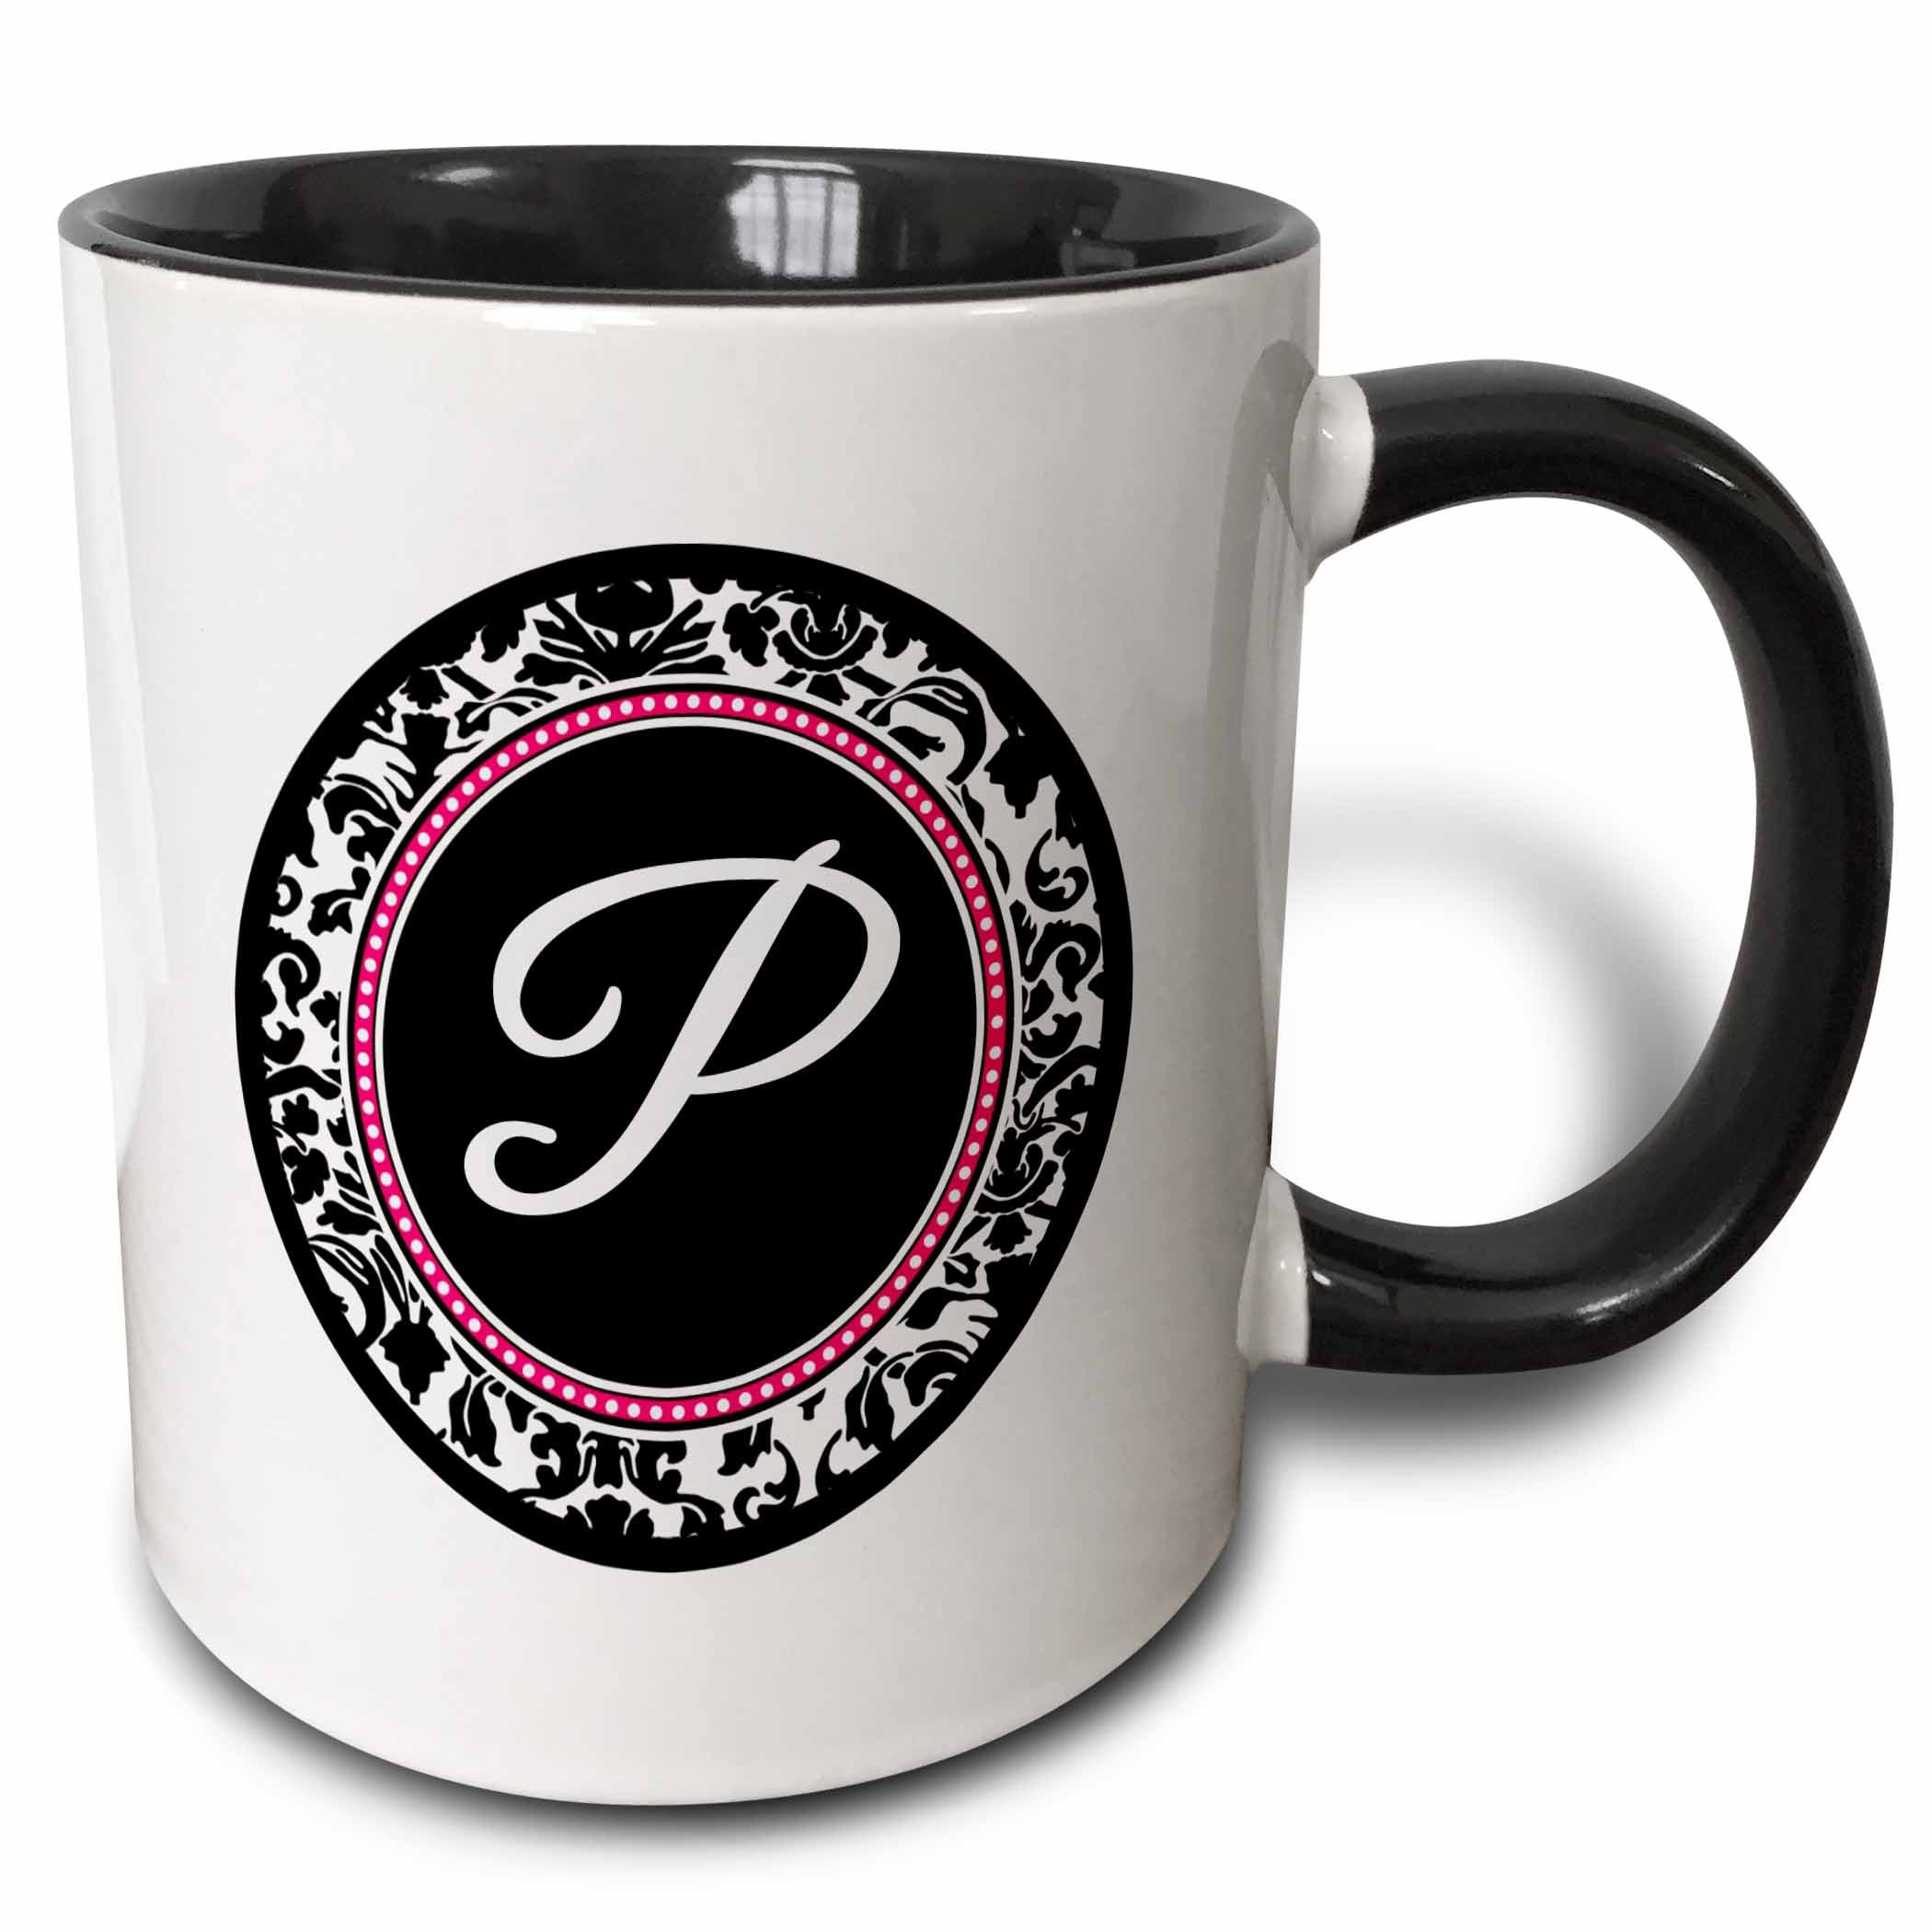 3dRose (mug_154608_4) Letter P stylish monogrammed circle - girly personal initial personalized black damask with hot pink - Two Tone Black Mug, 11oz